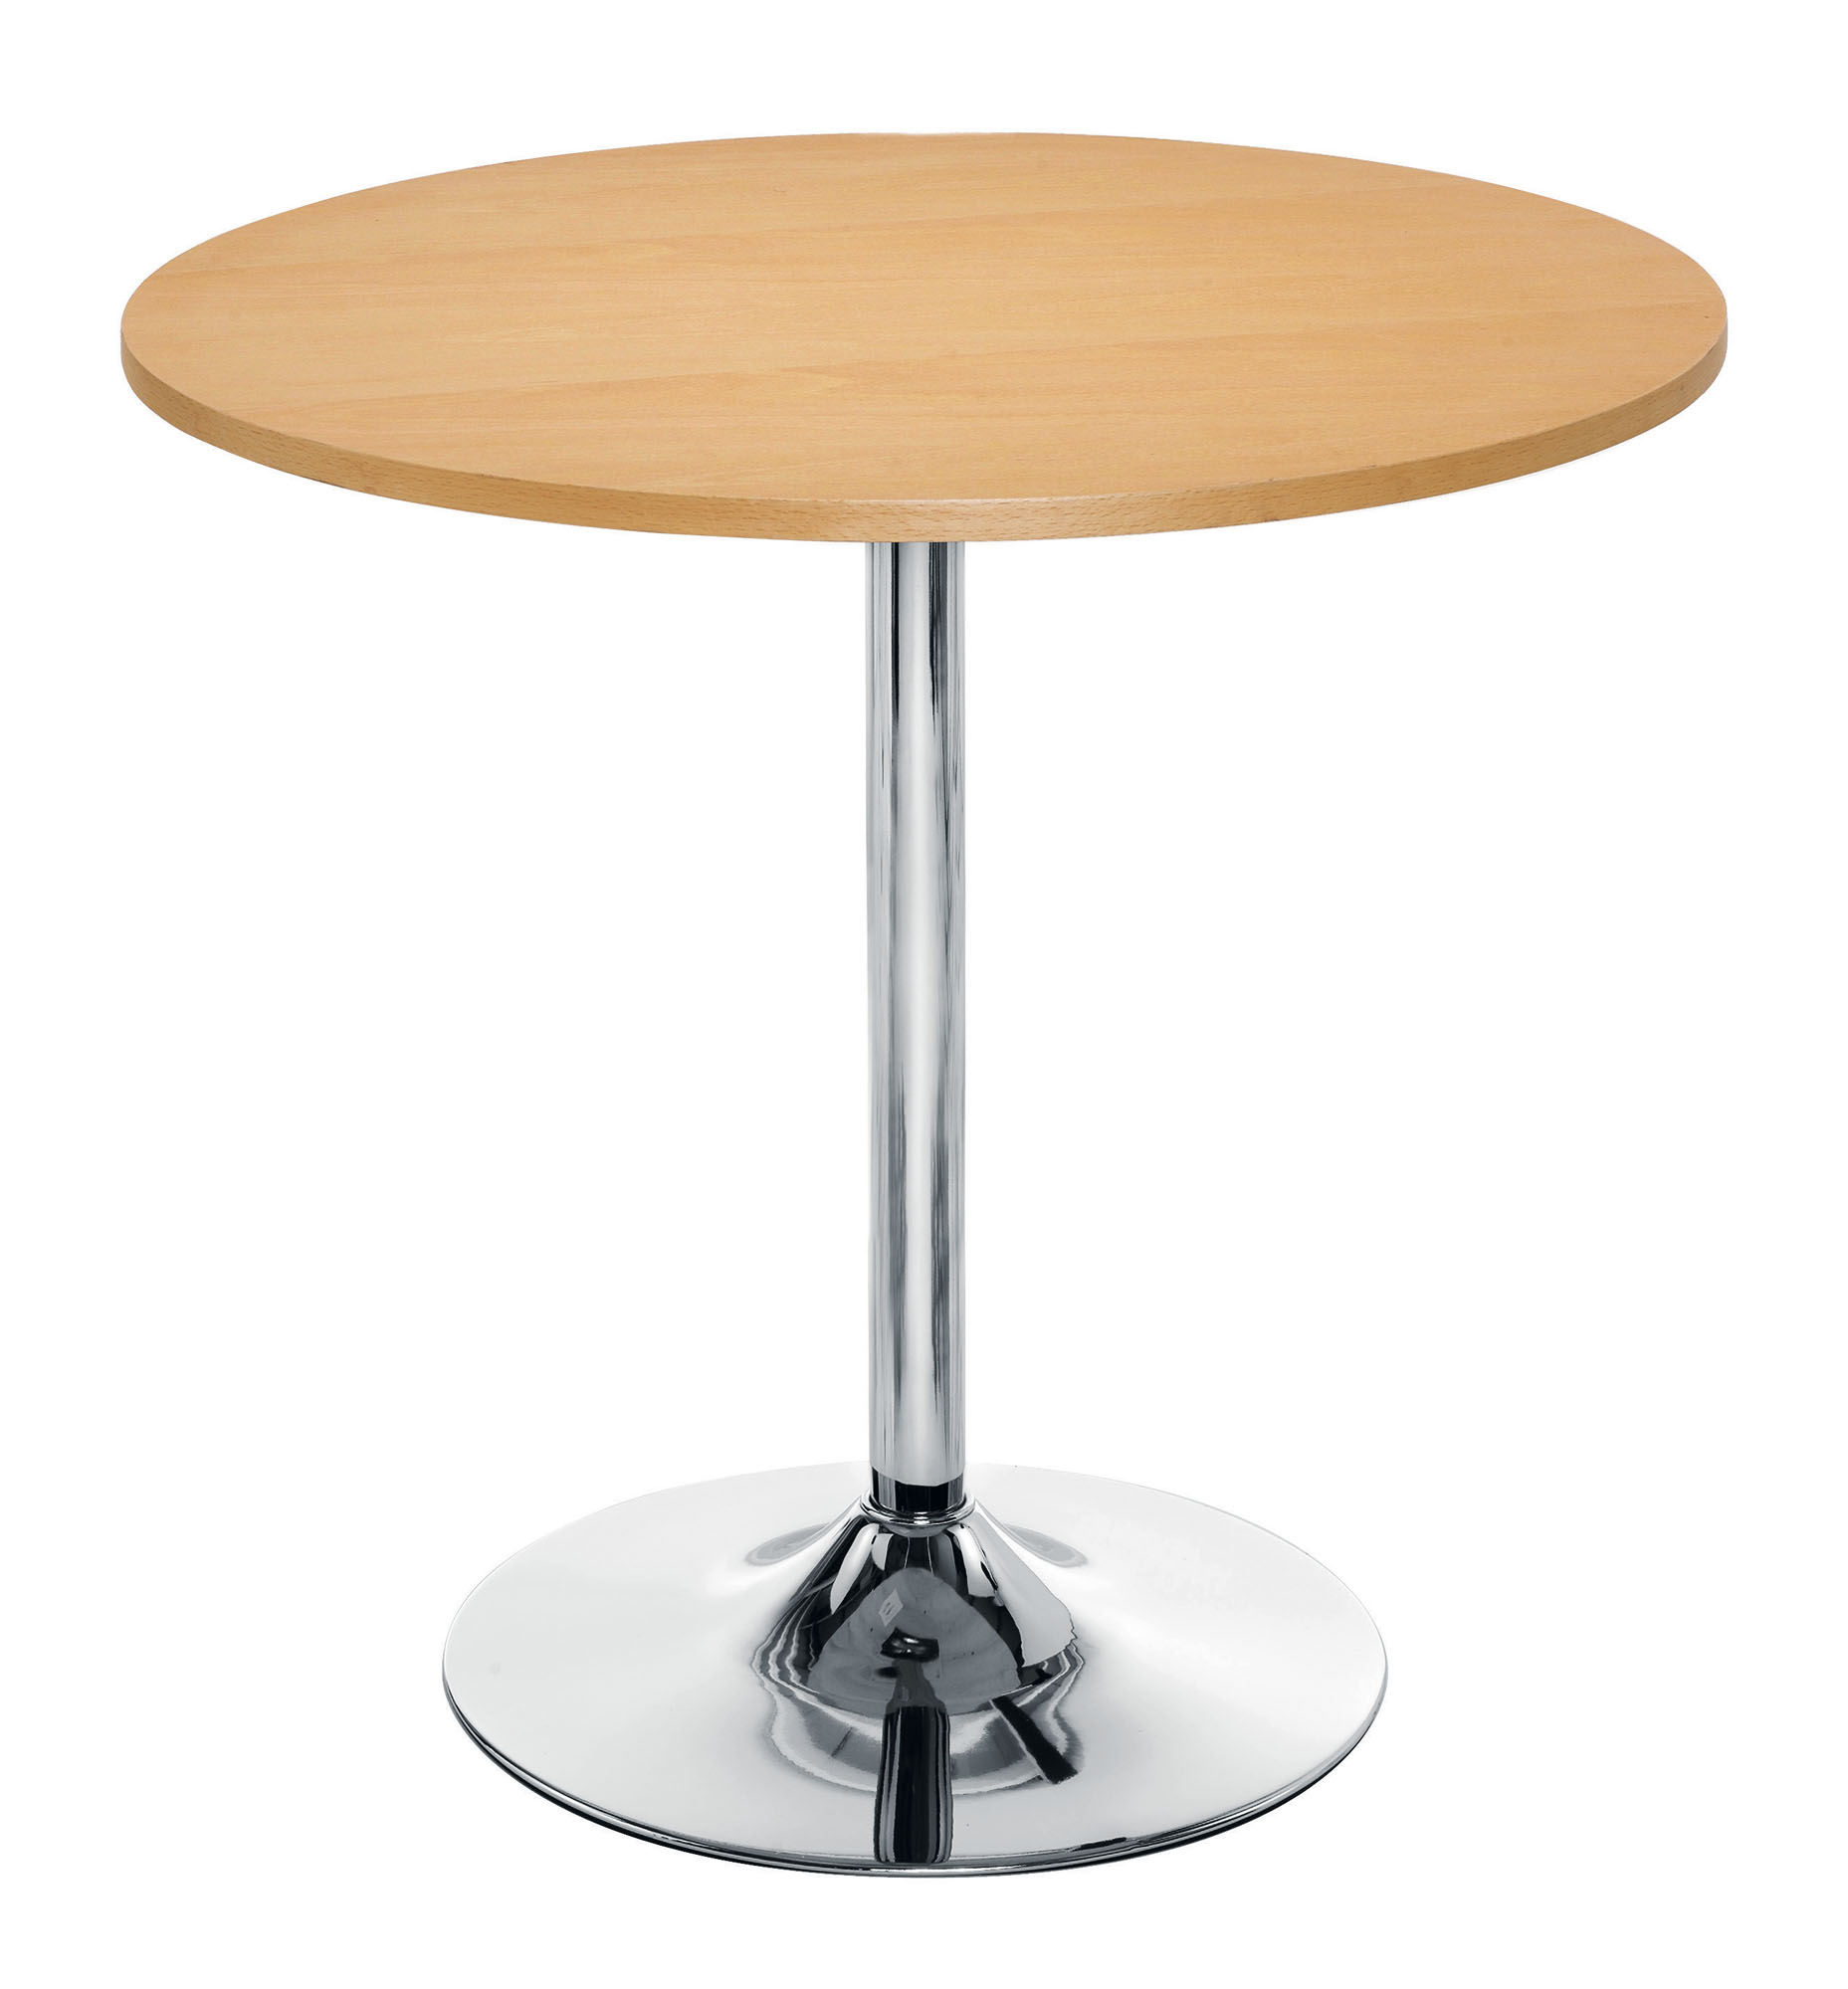 Ellipse Trumpet Base Table